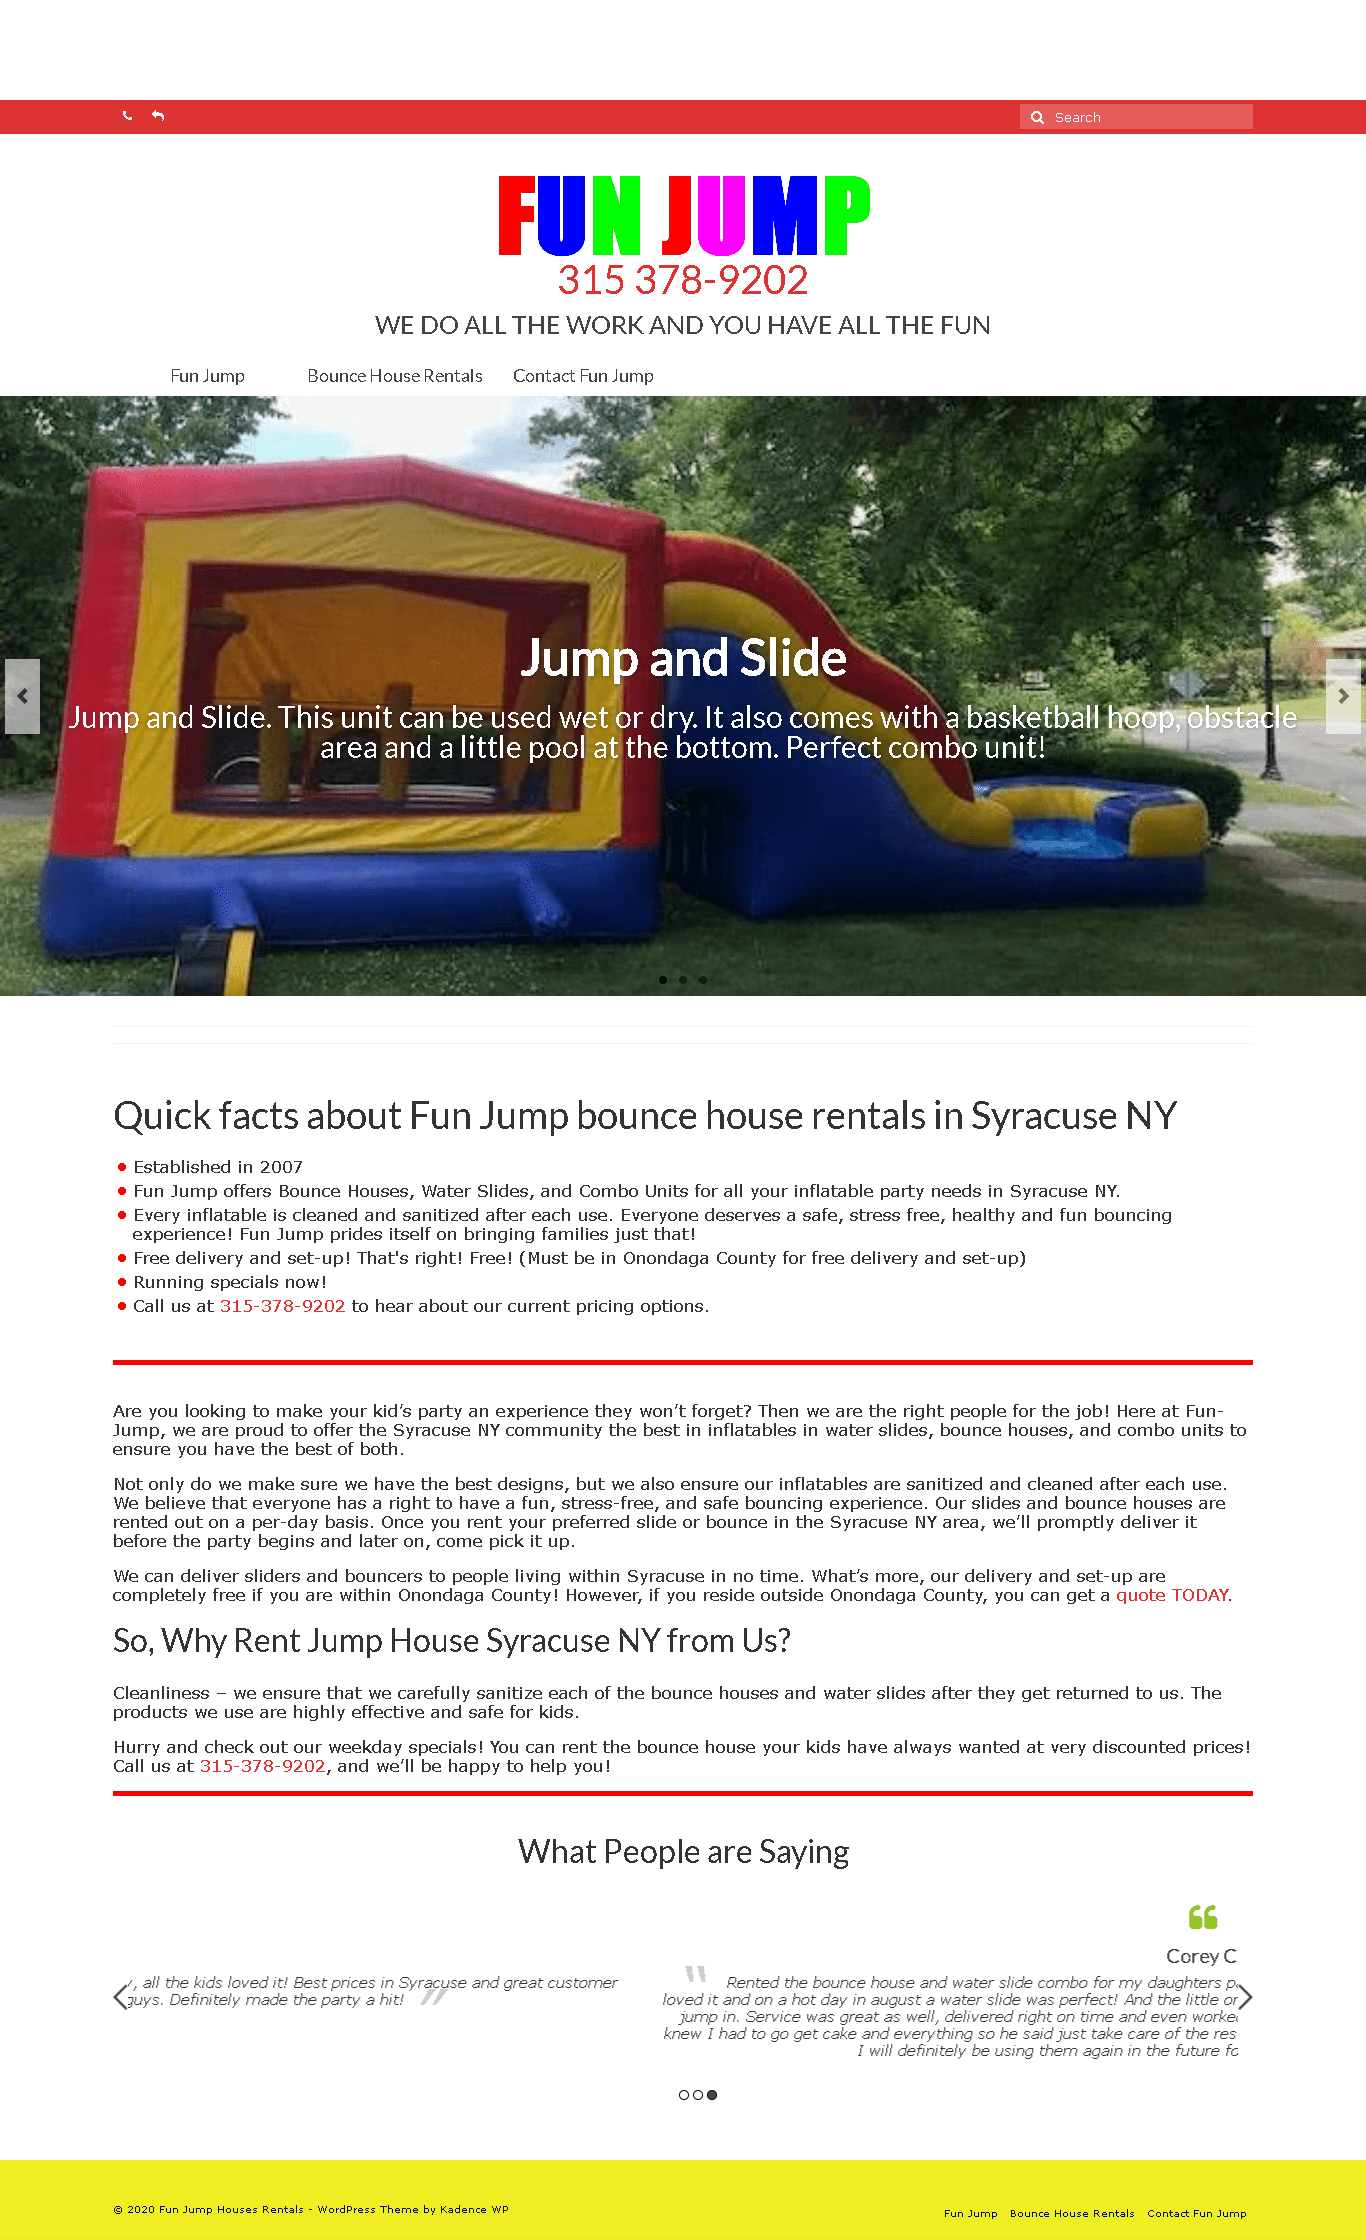 Fun Jump bounce house rentals in Syracuse NY